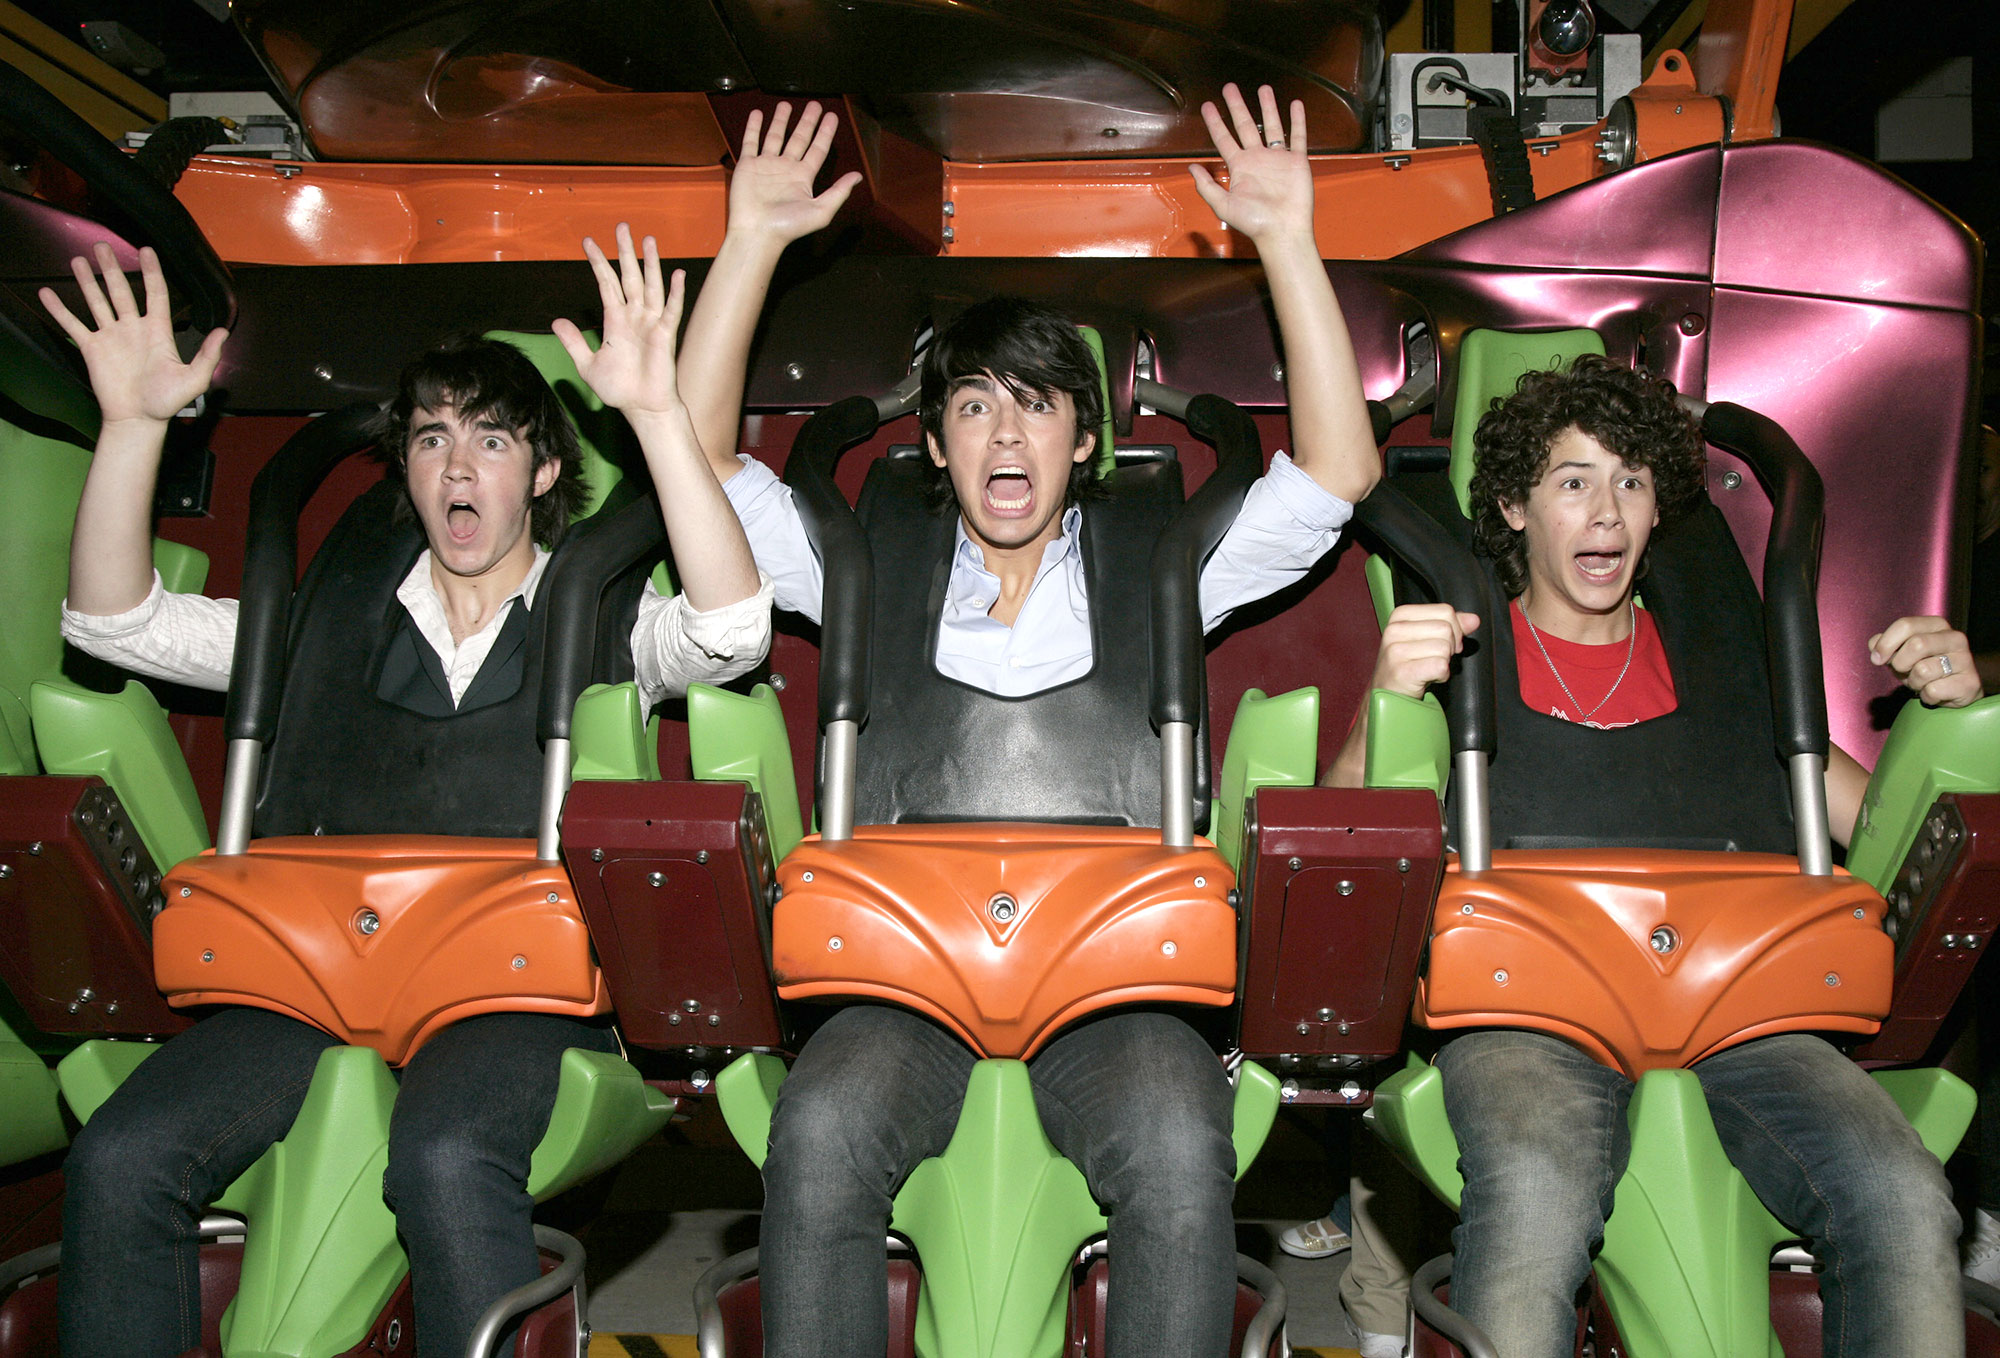 Miley Cyrus and The Jonas Brothers Visit Six Flags Magic Mountain